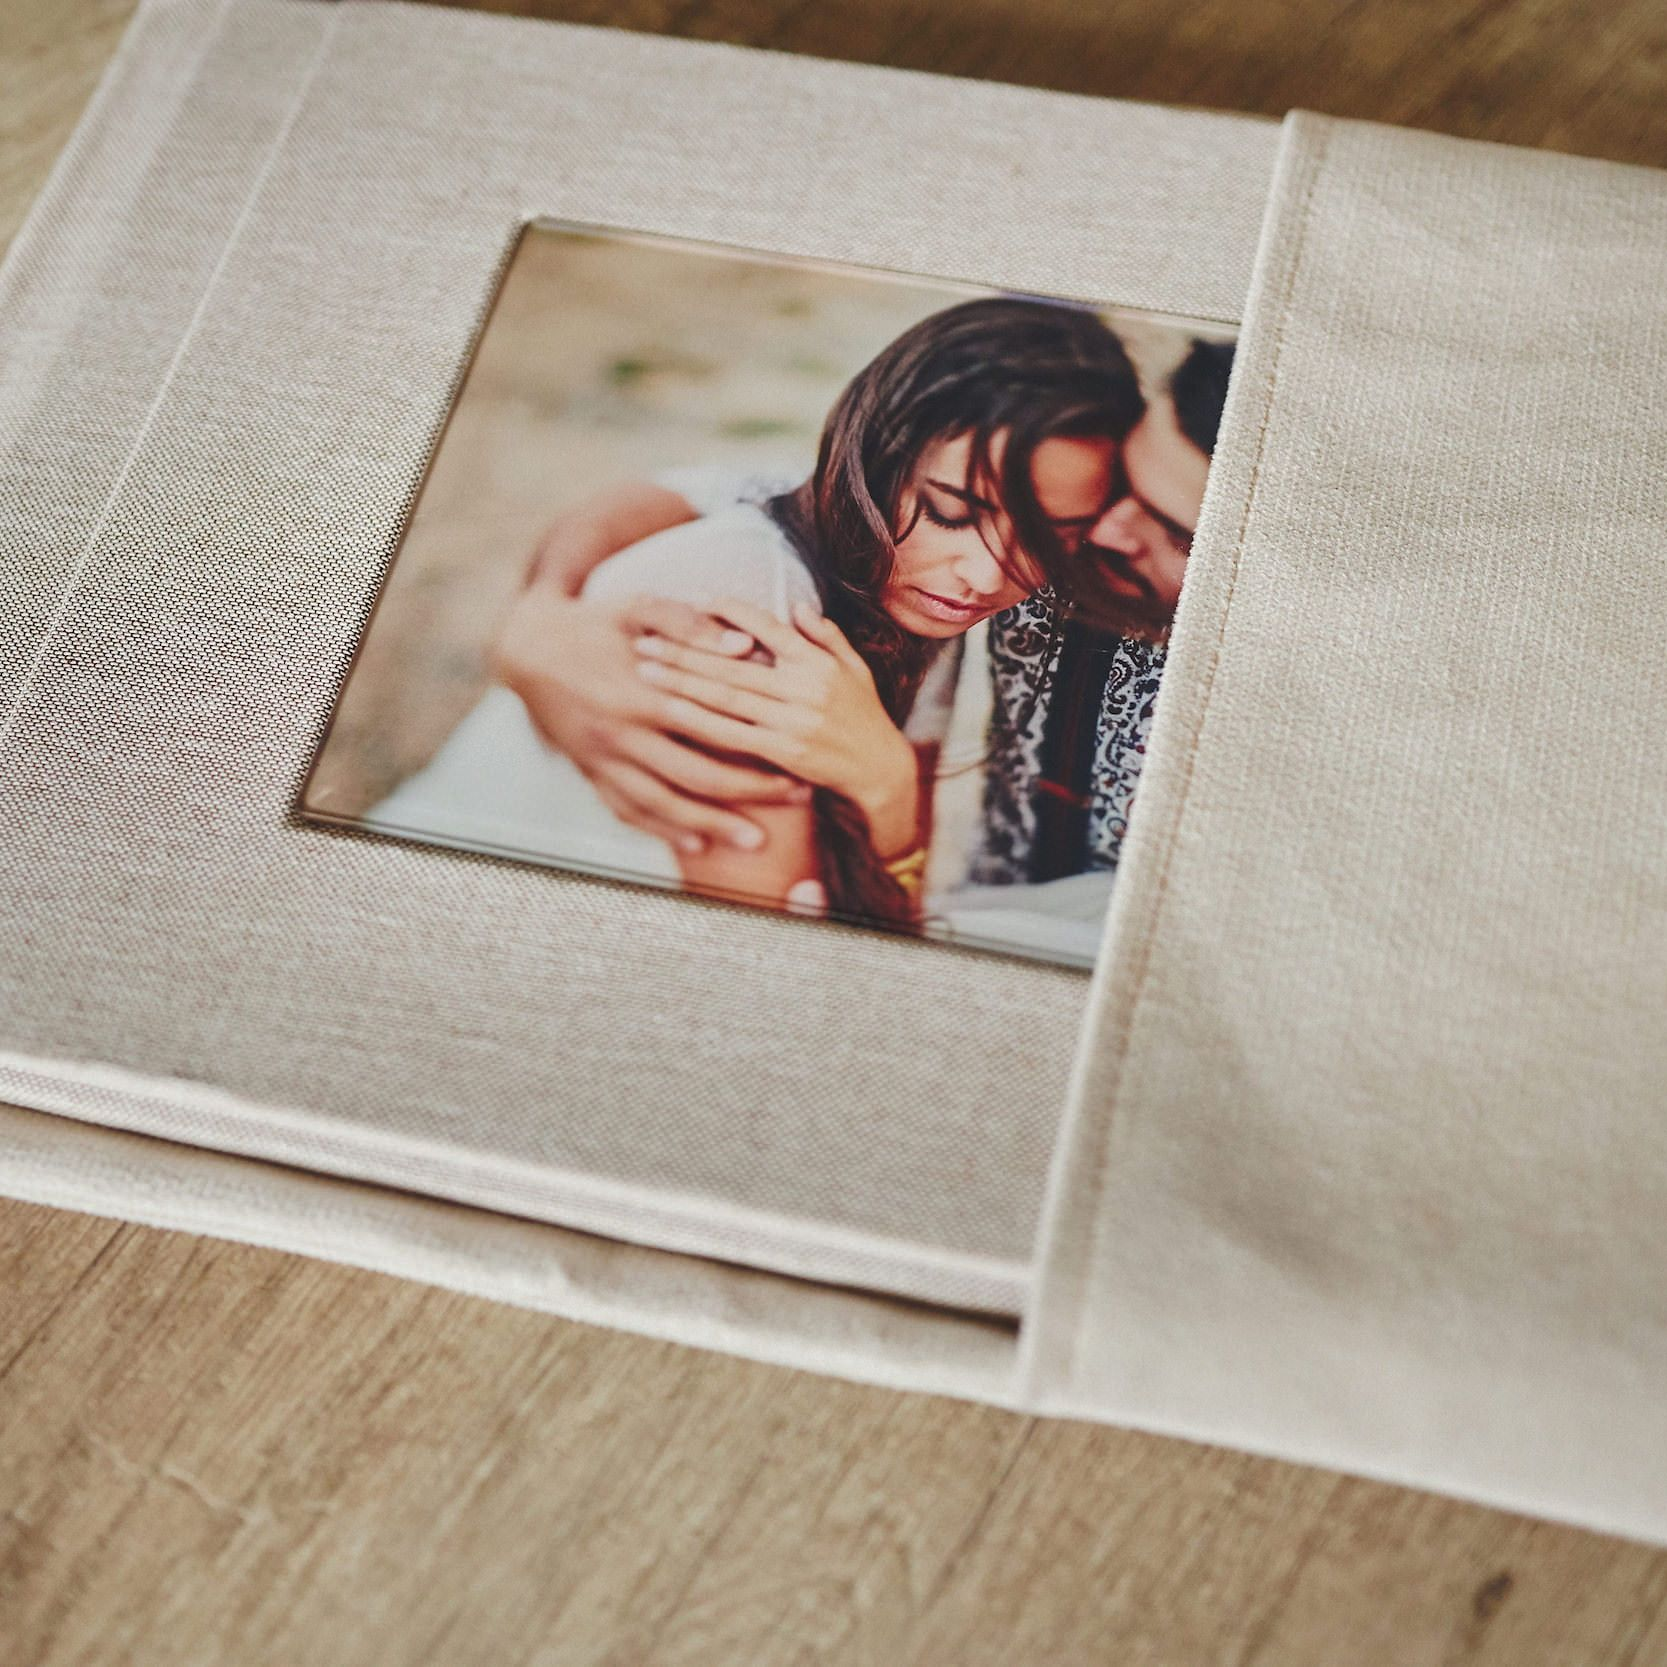 Small Wedding Album 20x30cm (40 pages-100 photos) 3